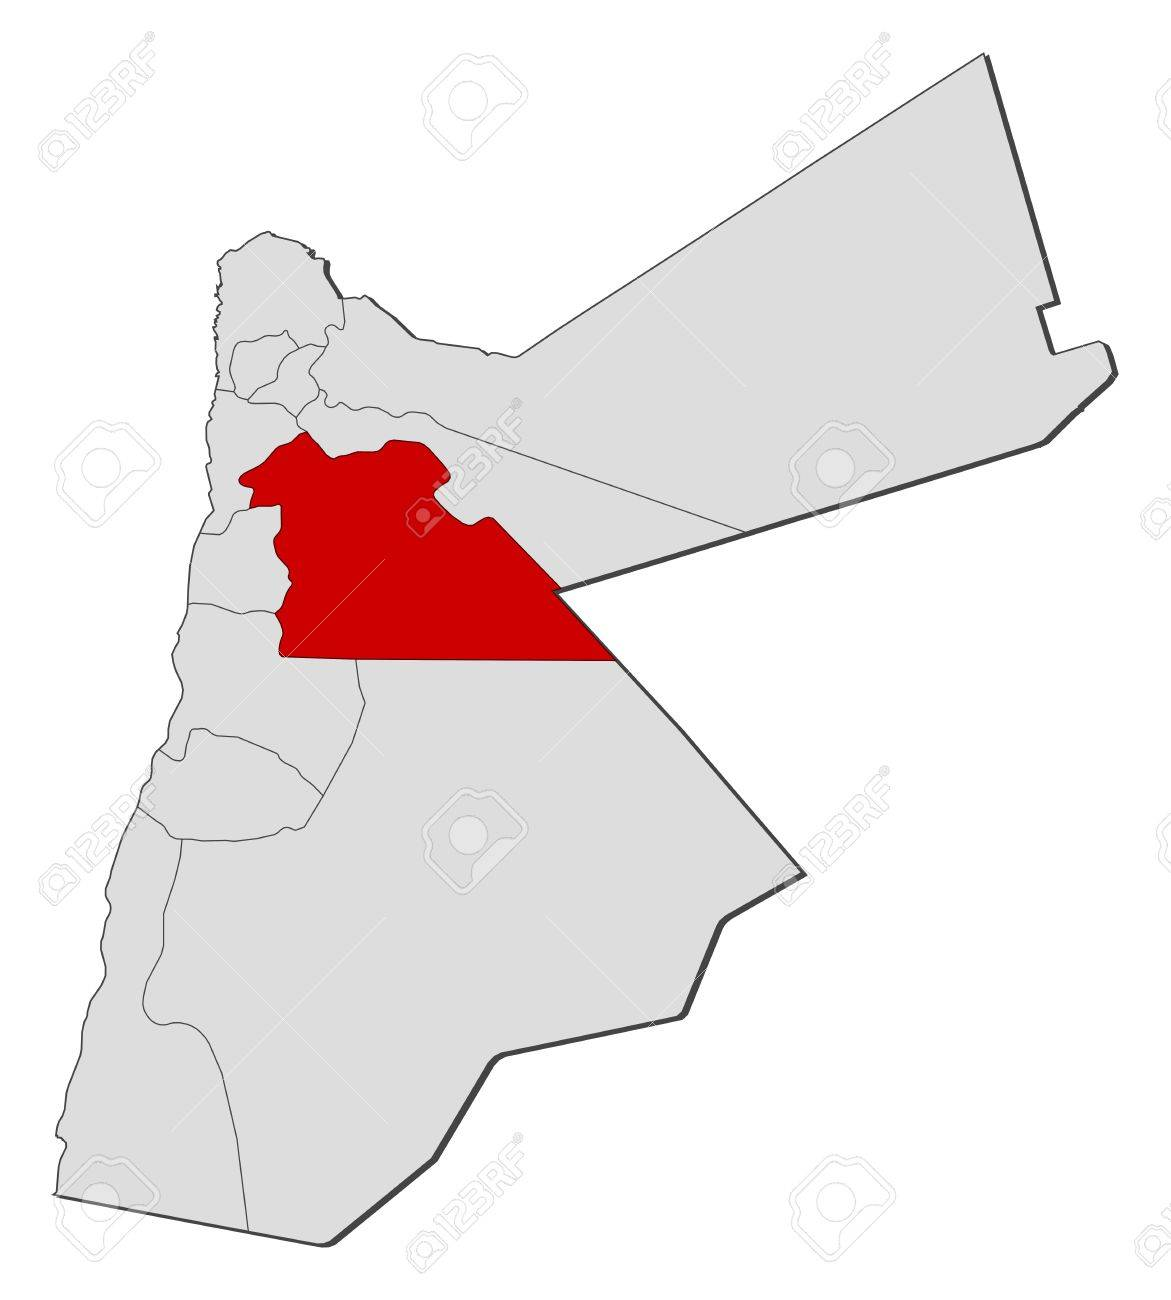 Political Map Of Jordan.Political Map Of Jordan With The Several Governorates Where Amman